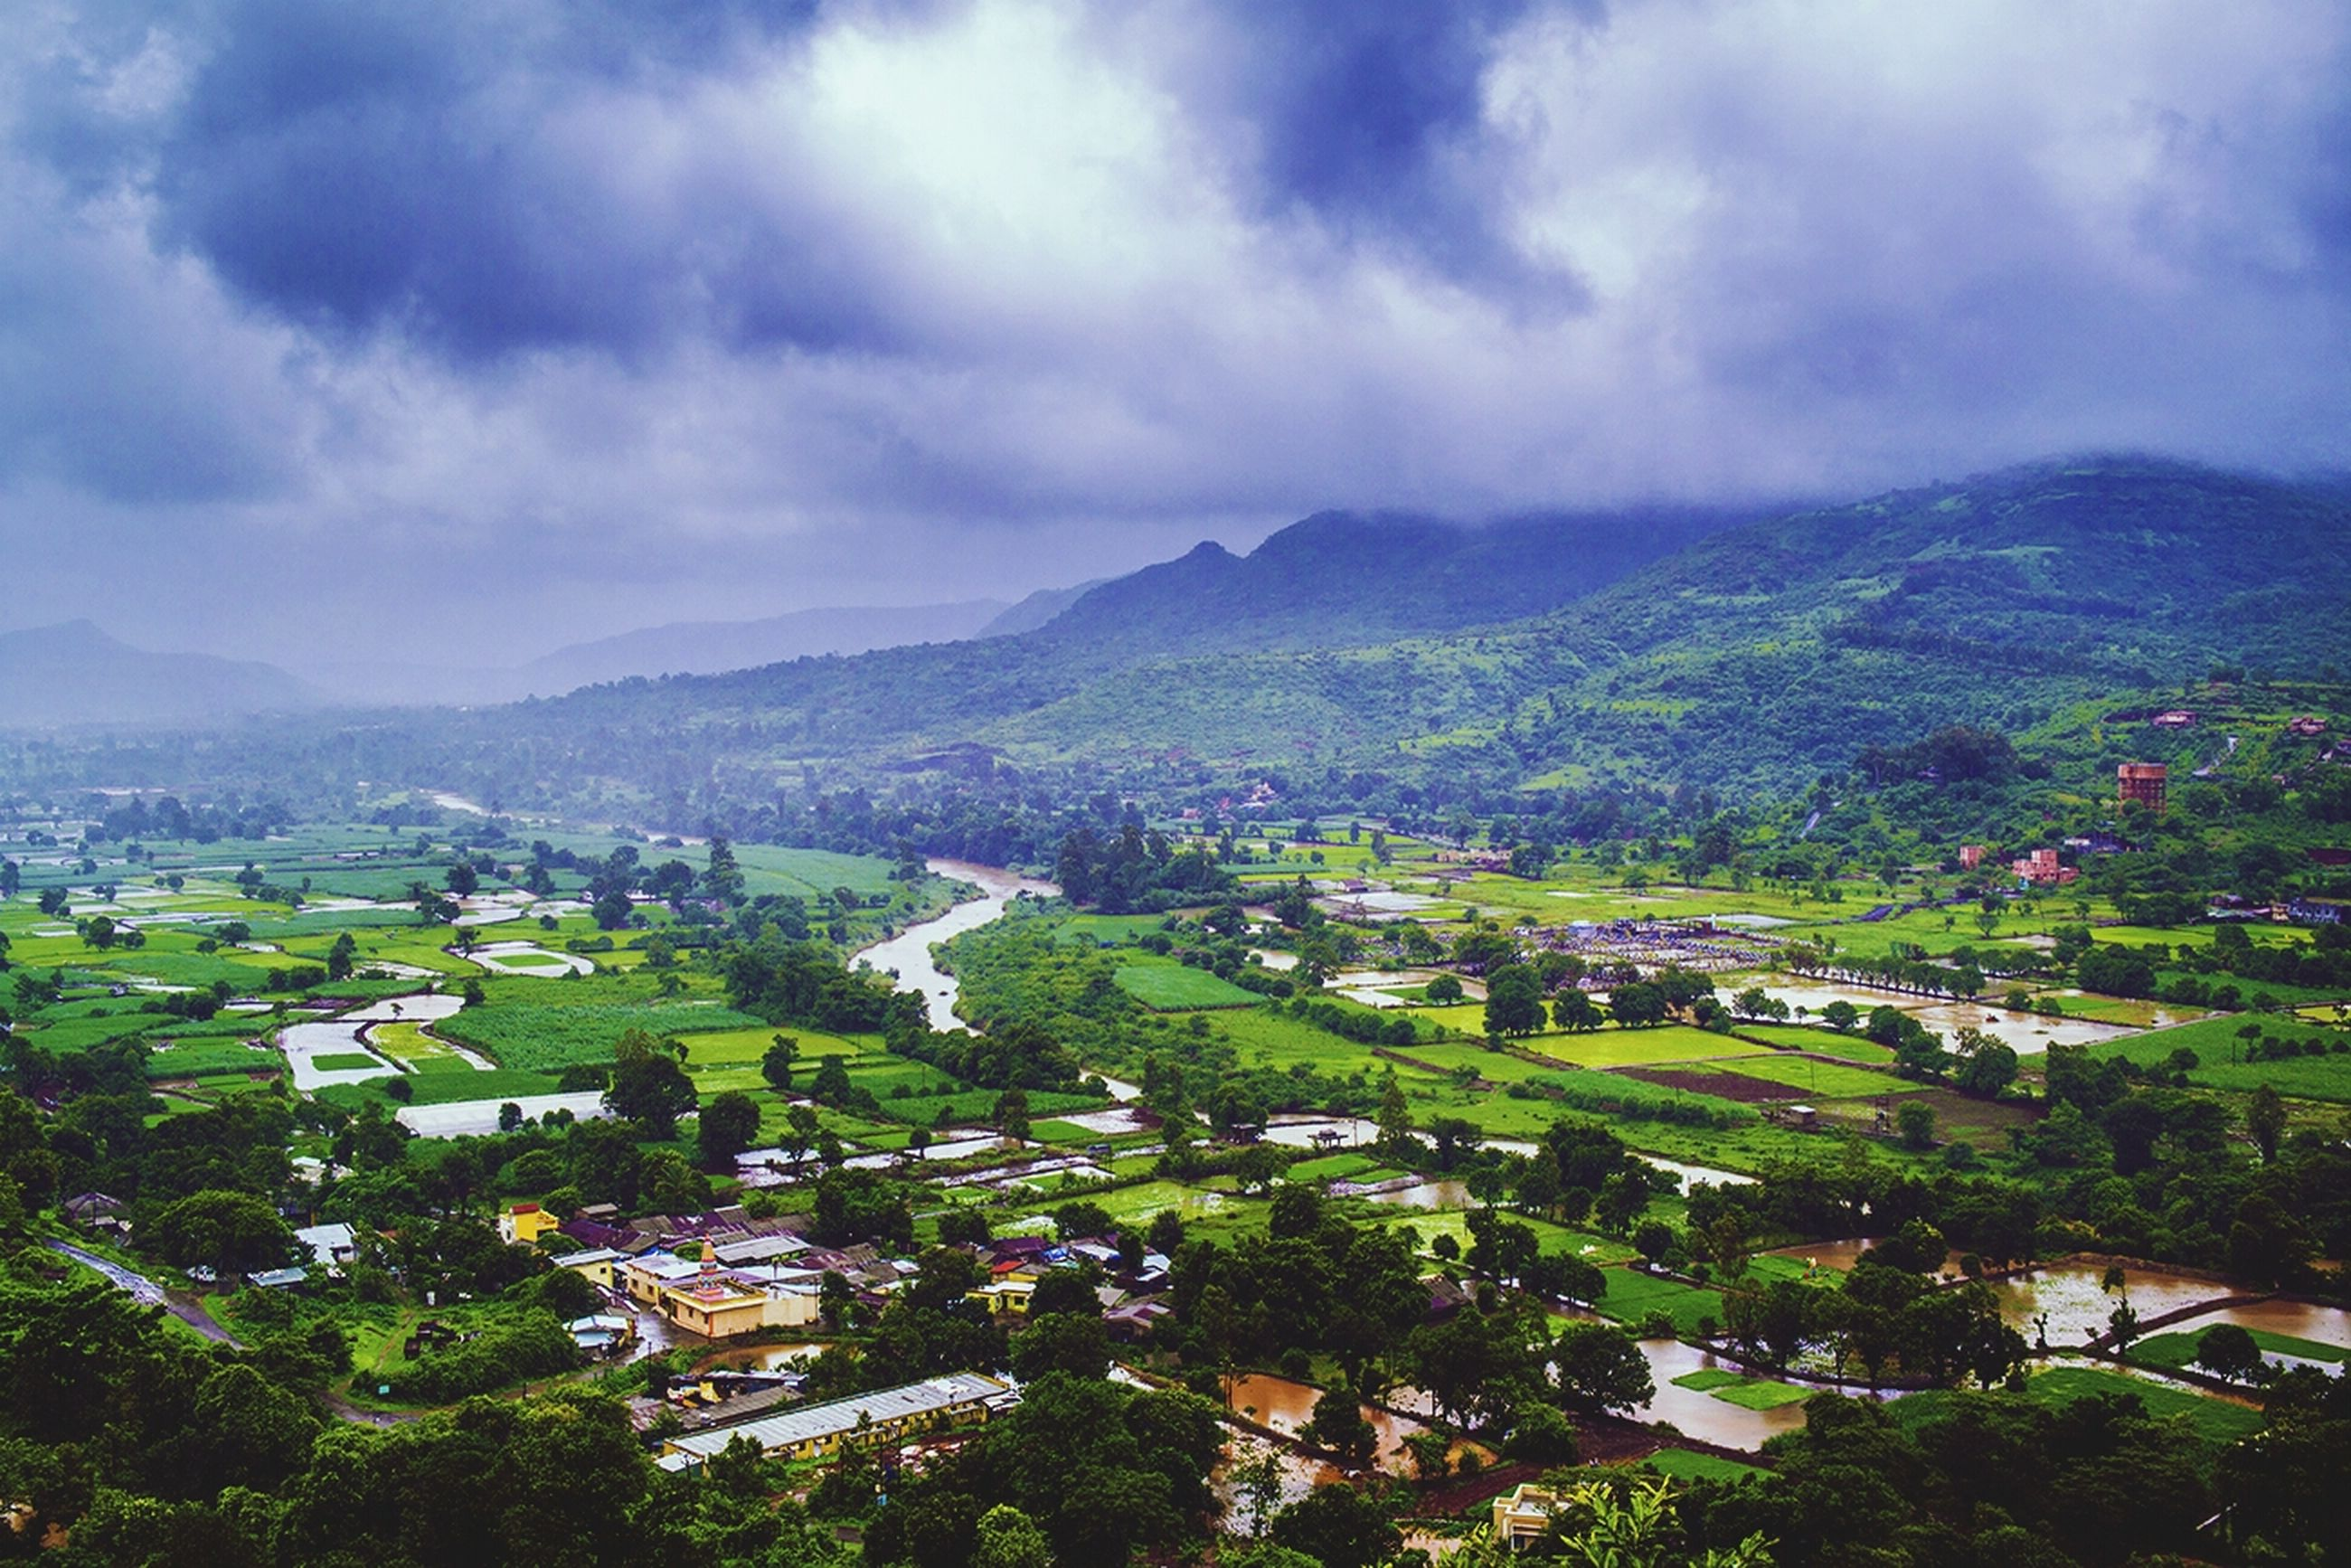 mountain, building exterior, sky, tree, architecture, built structure, cloud - sky, high angle view, mountain range, residential district, town, cityscape, house, crowded, residential structure, city, residential building, townscape, cloudy, cloud